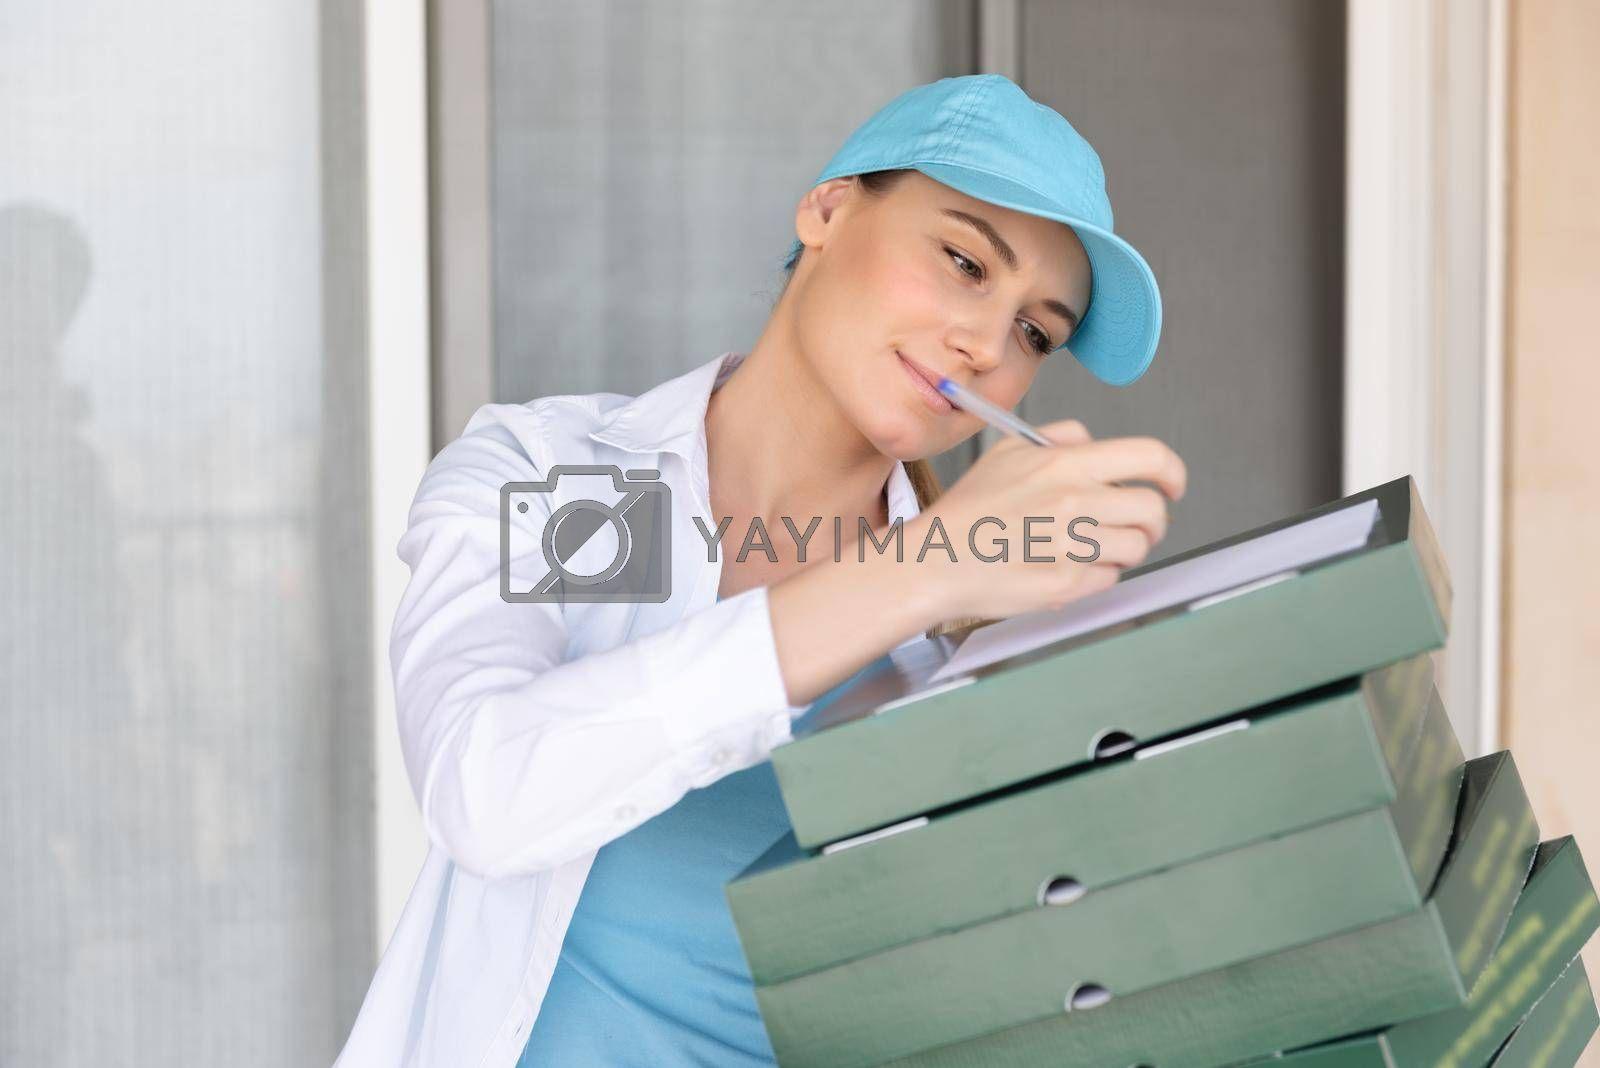 Nice Delivery Girl Wearing Special Uniform Signs a Check for Payment. Delivering Necessary Products. Modern Online Business. Conceptual Photo of a Service Occupation.